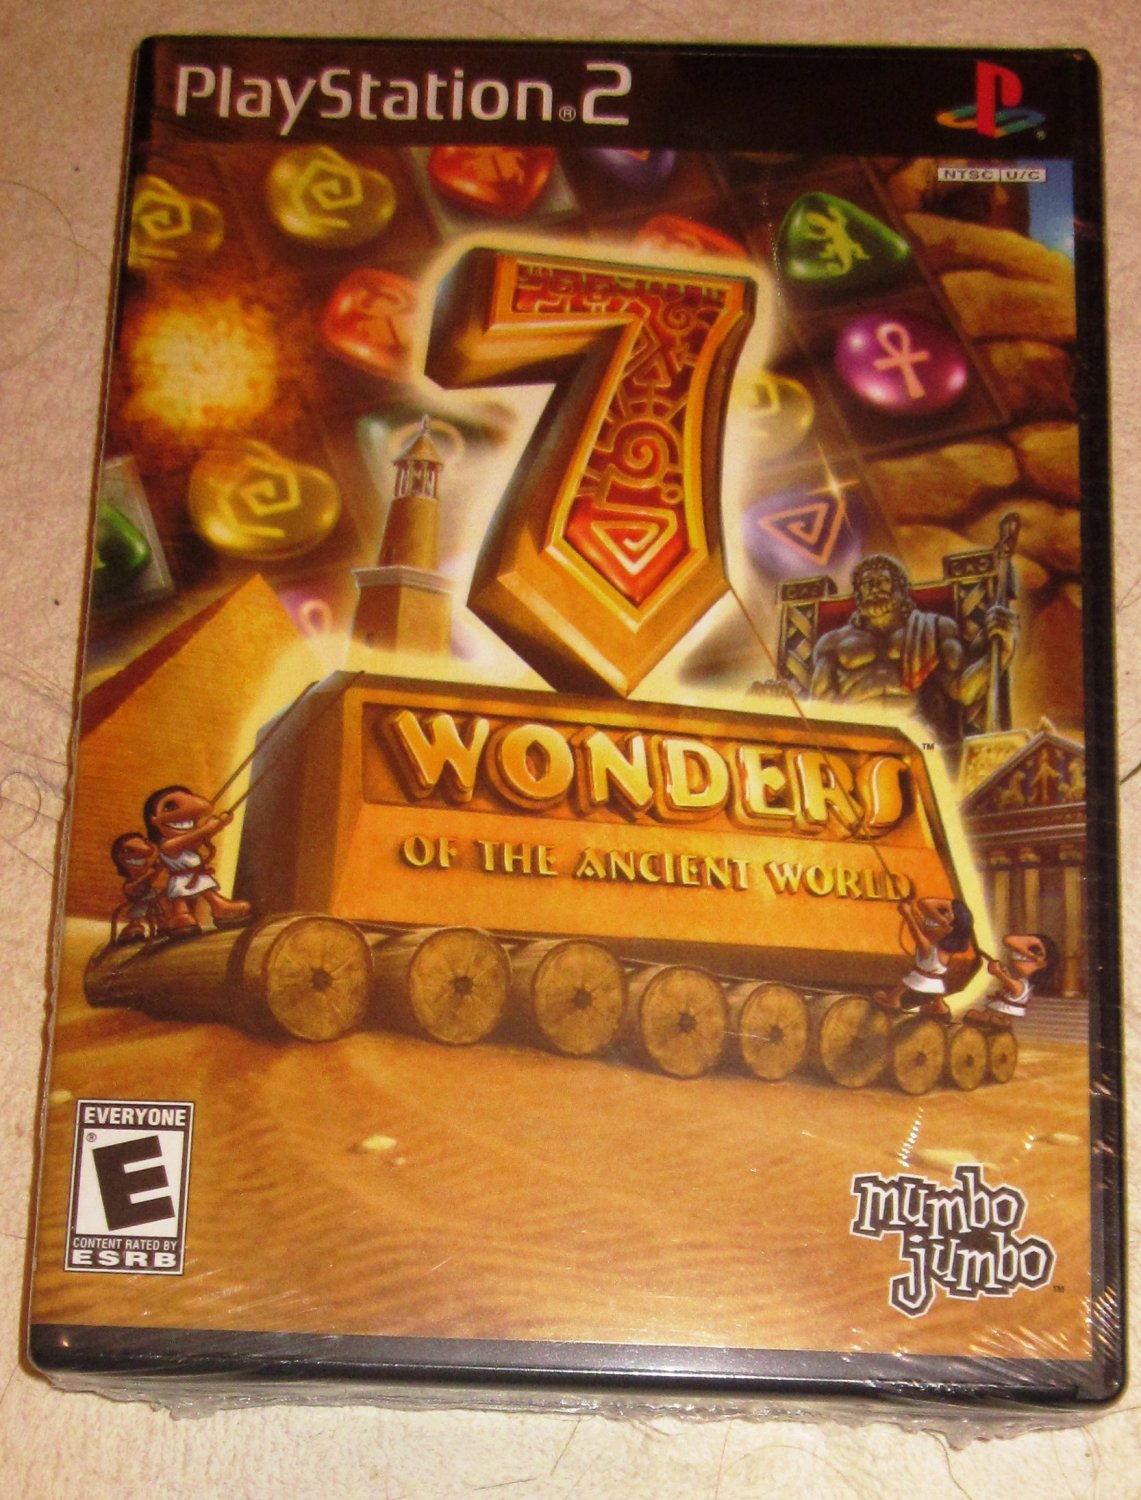 Playstation 2 7 Wonders of the Ancient World